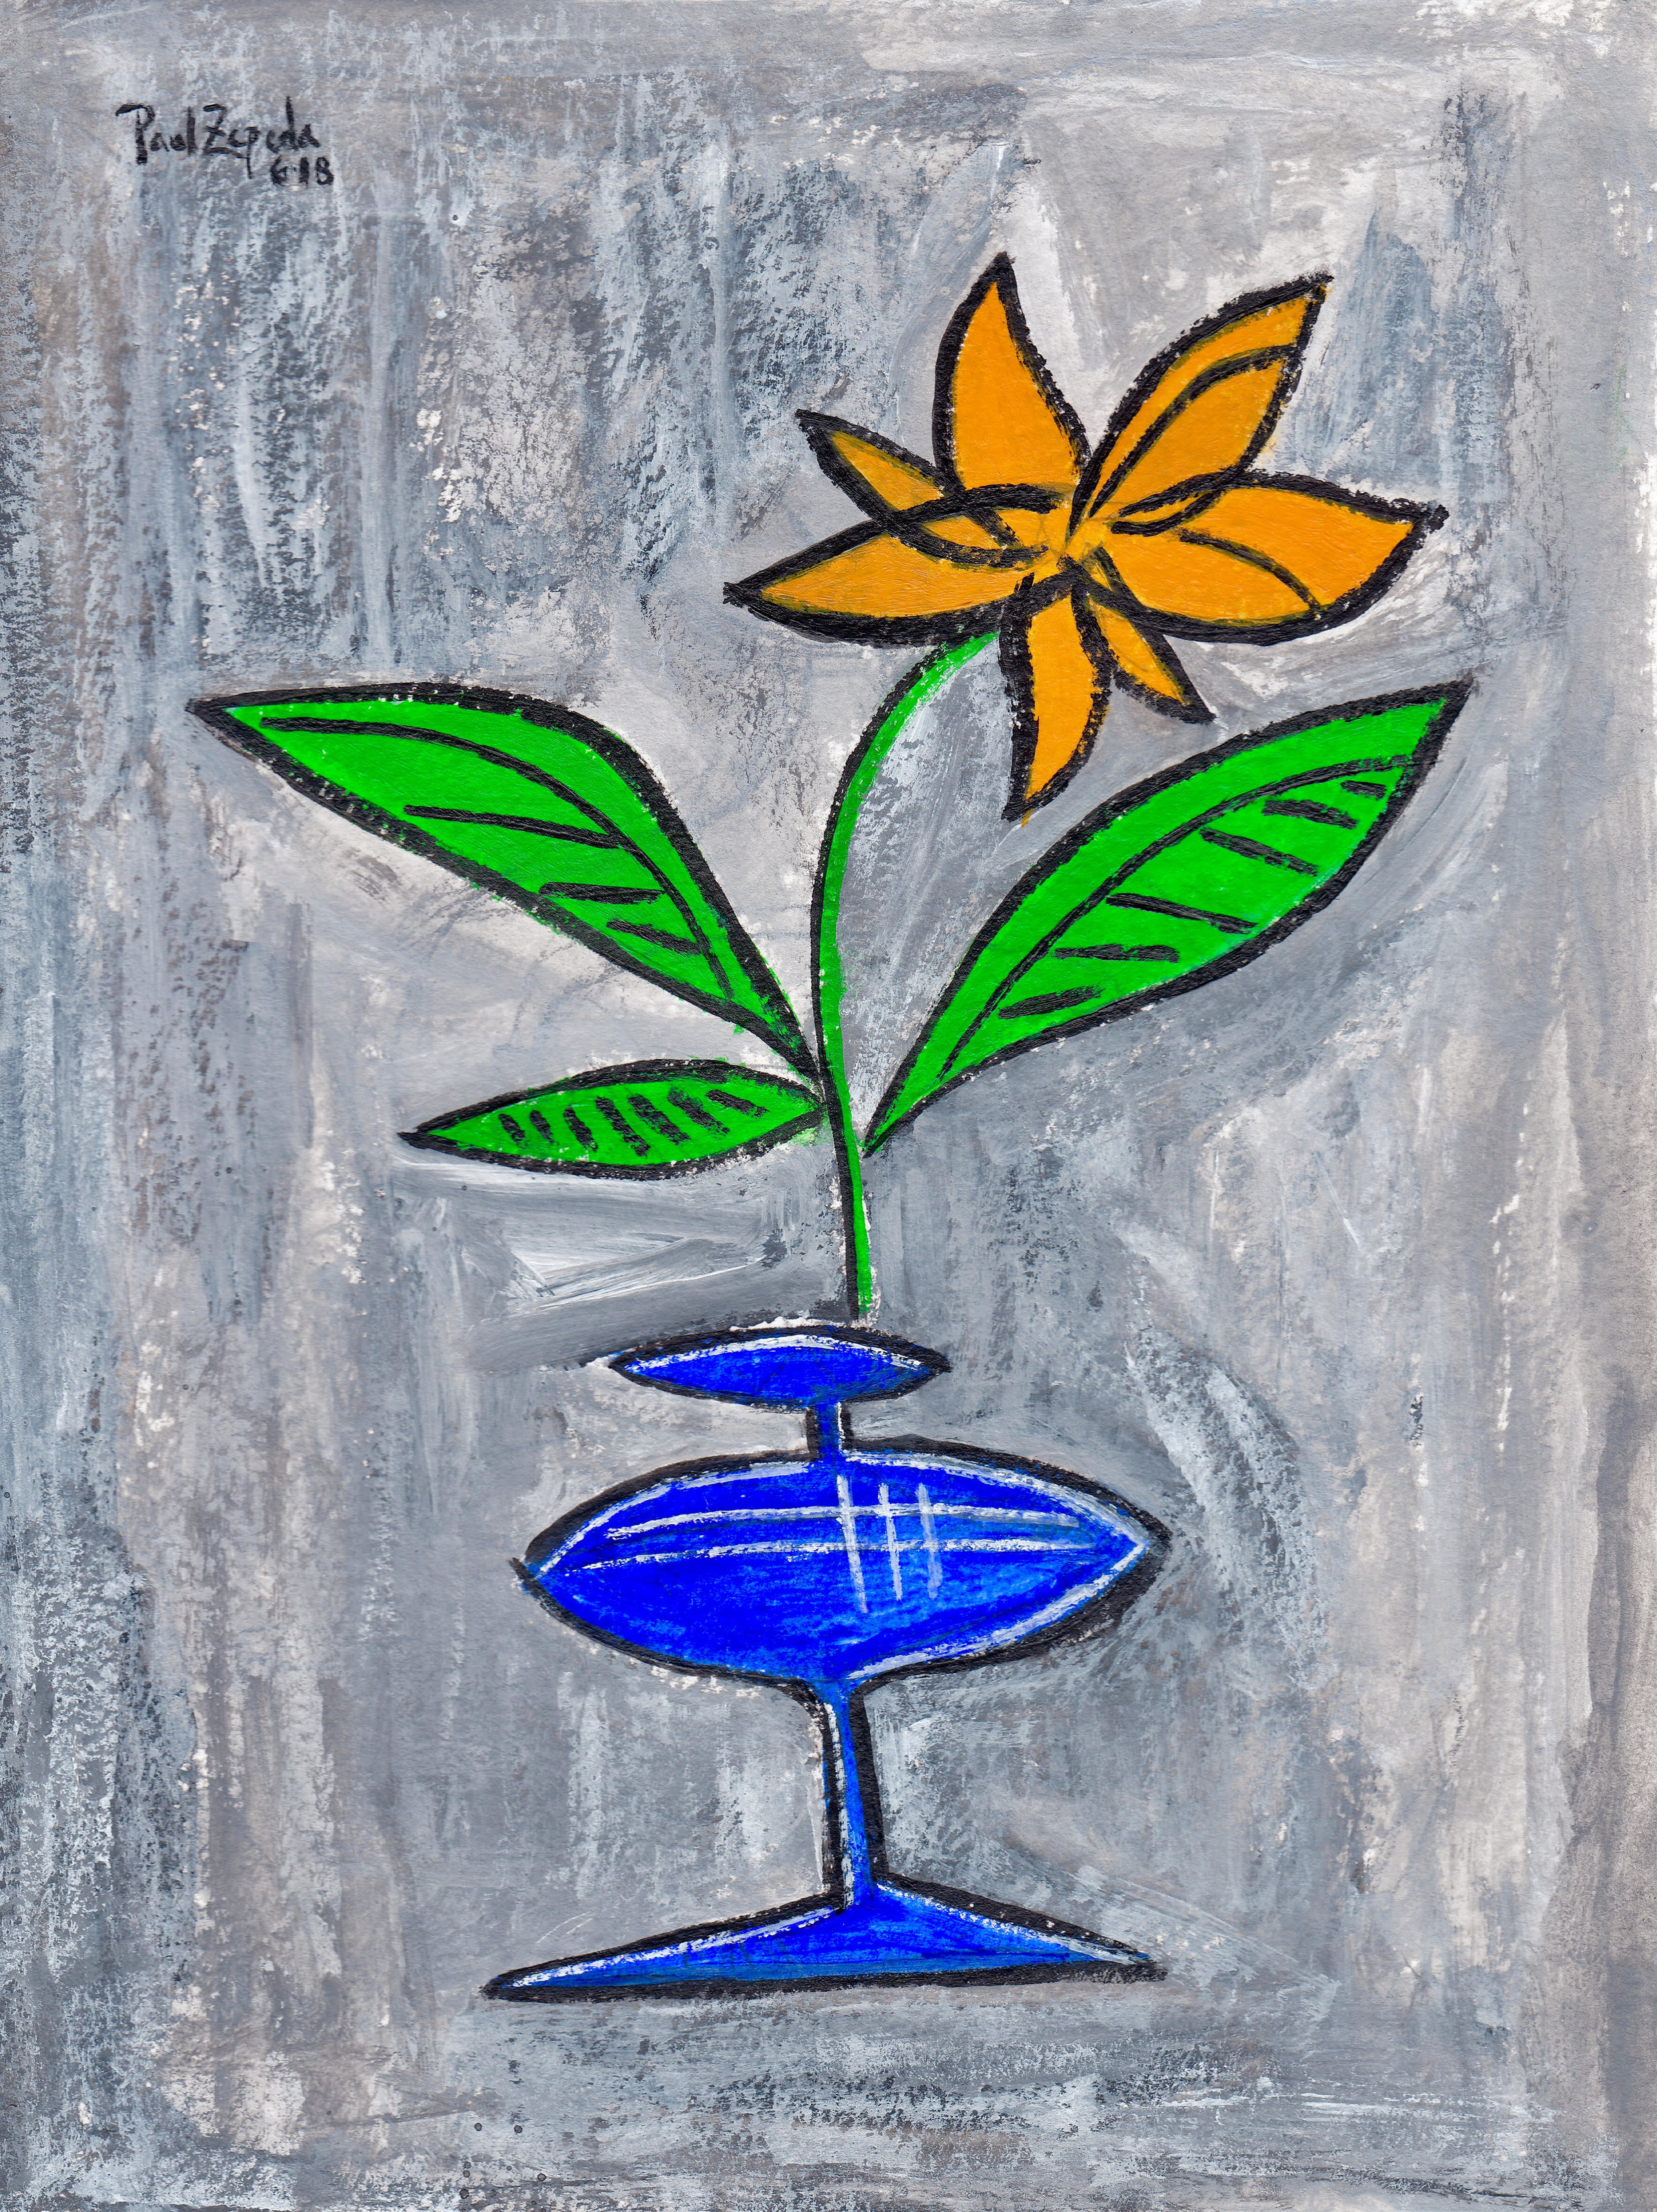 the-yellow-flower-painting-paul-zepeda-wet-paint-nyc.jpg